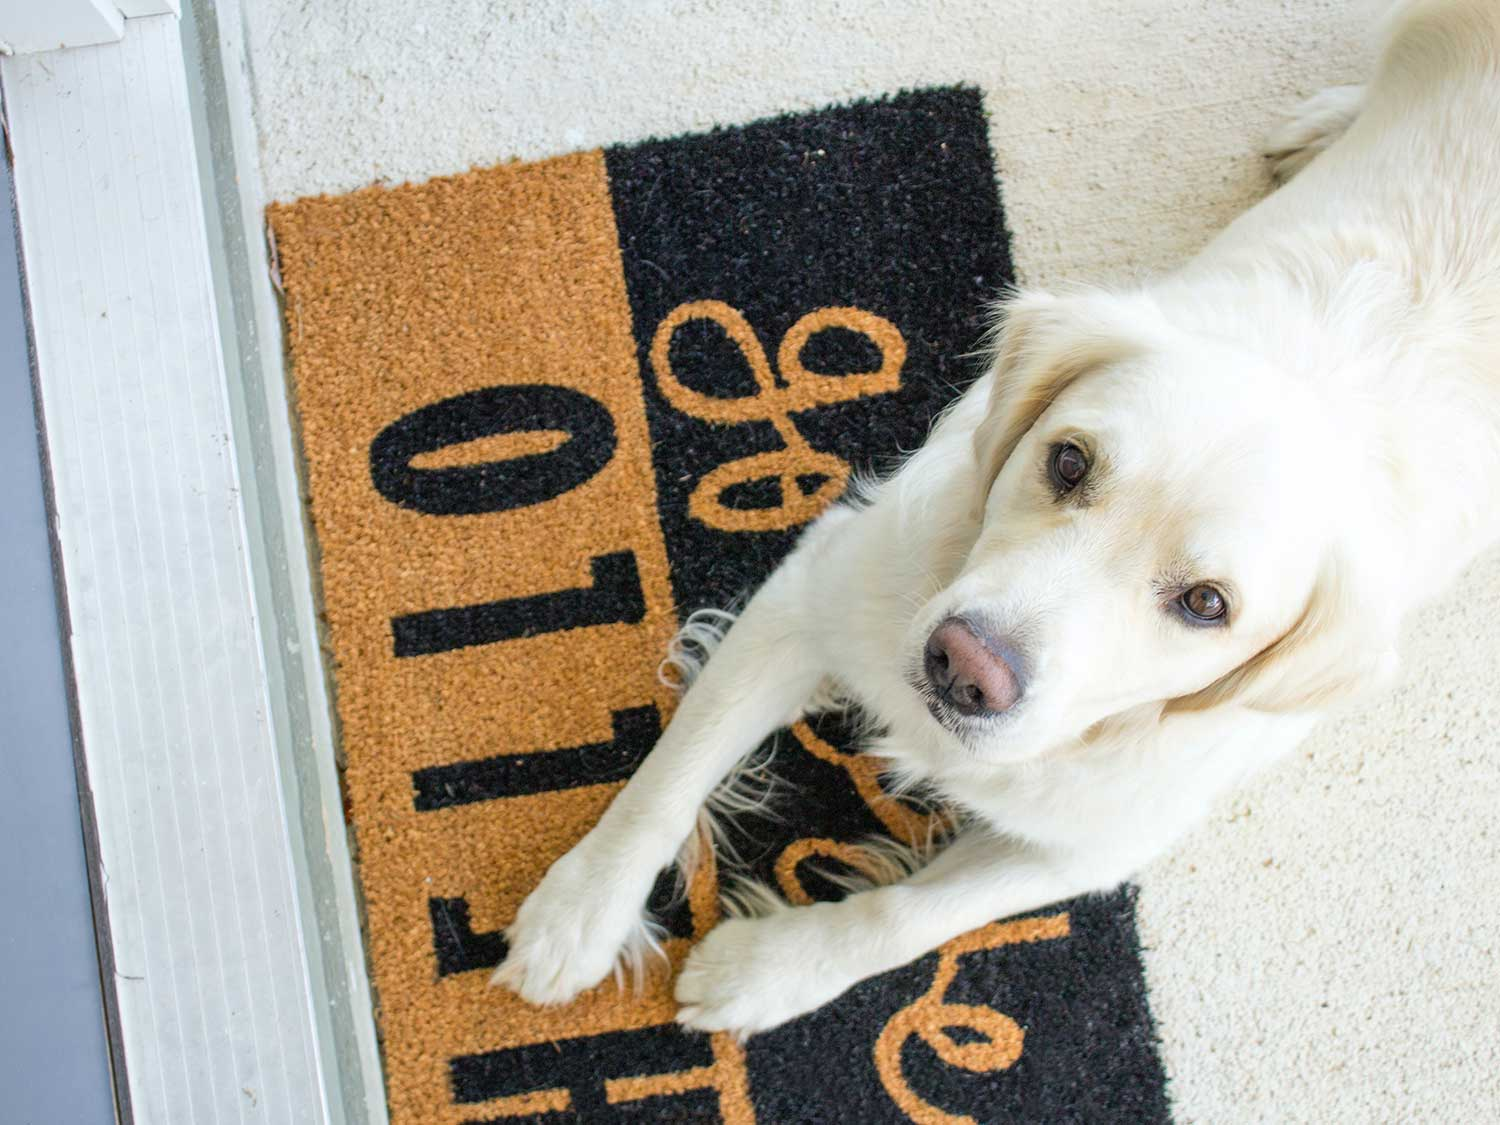 Dog sitting on top of welcome mat at front door.